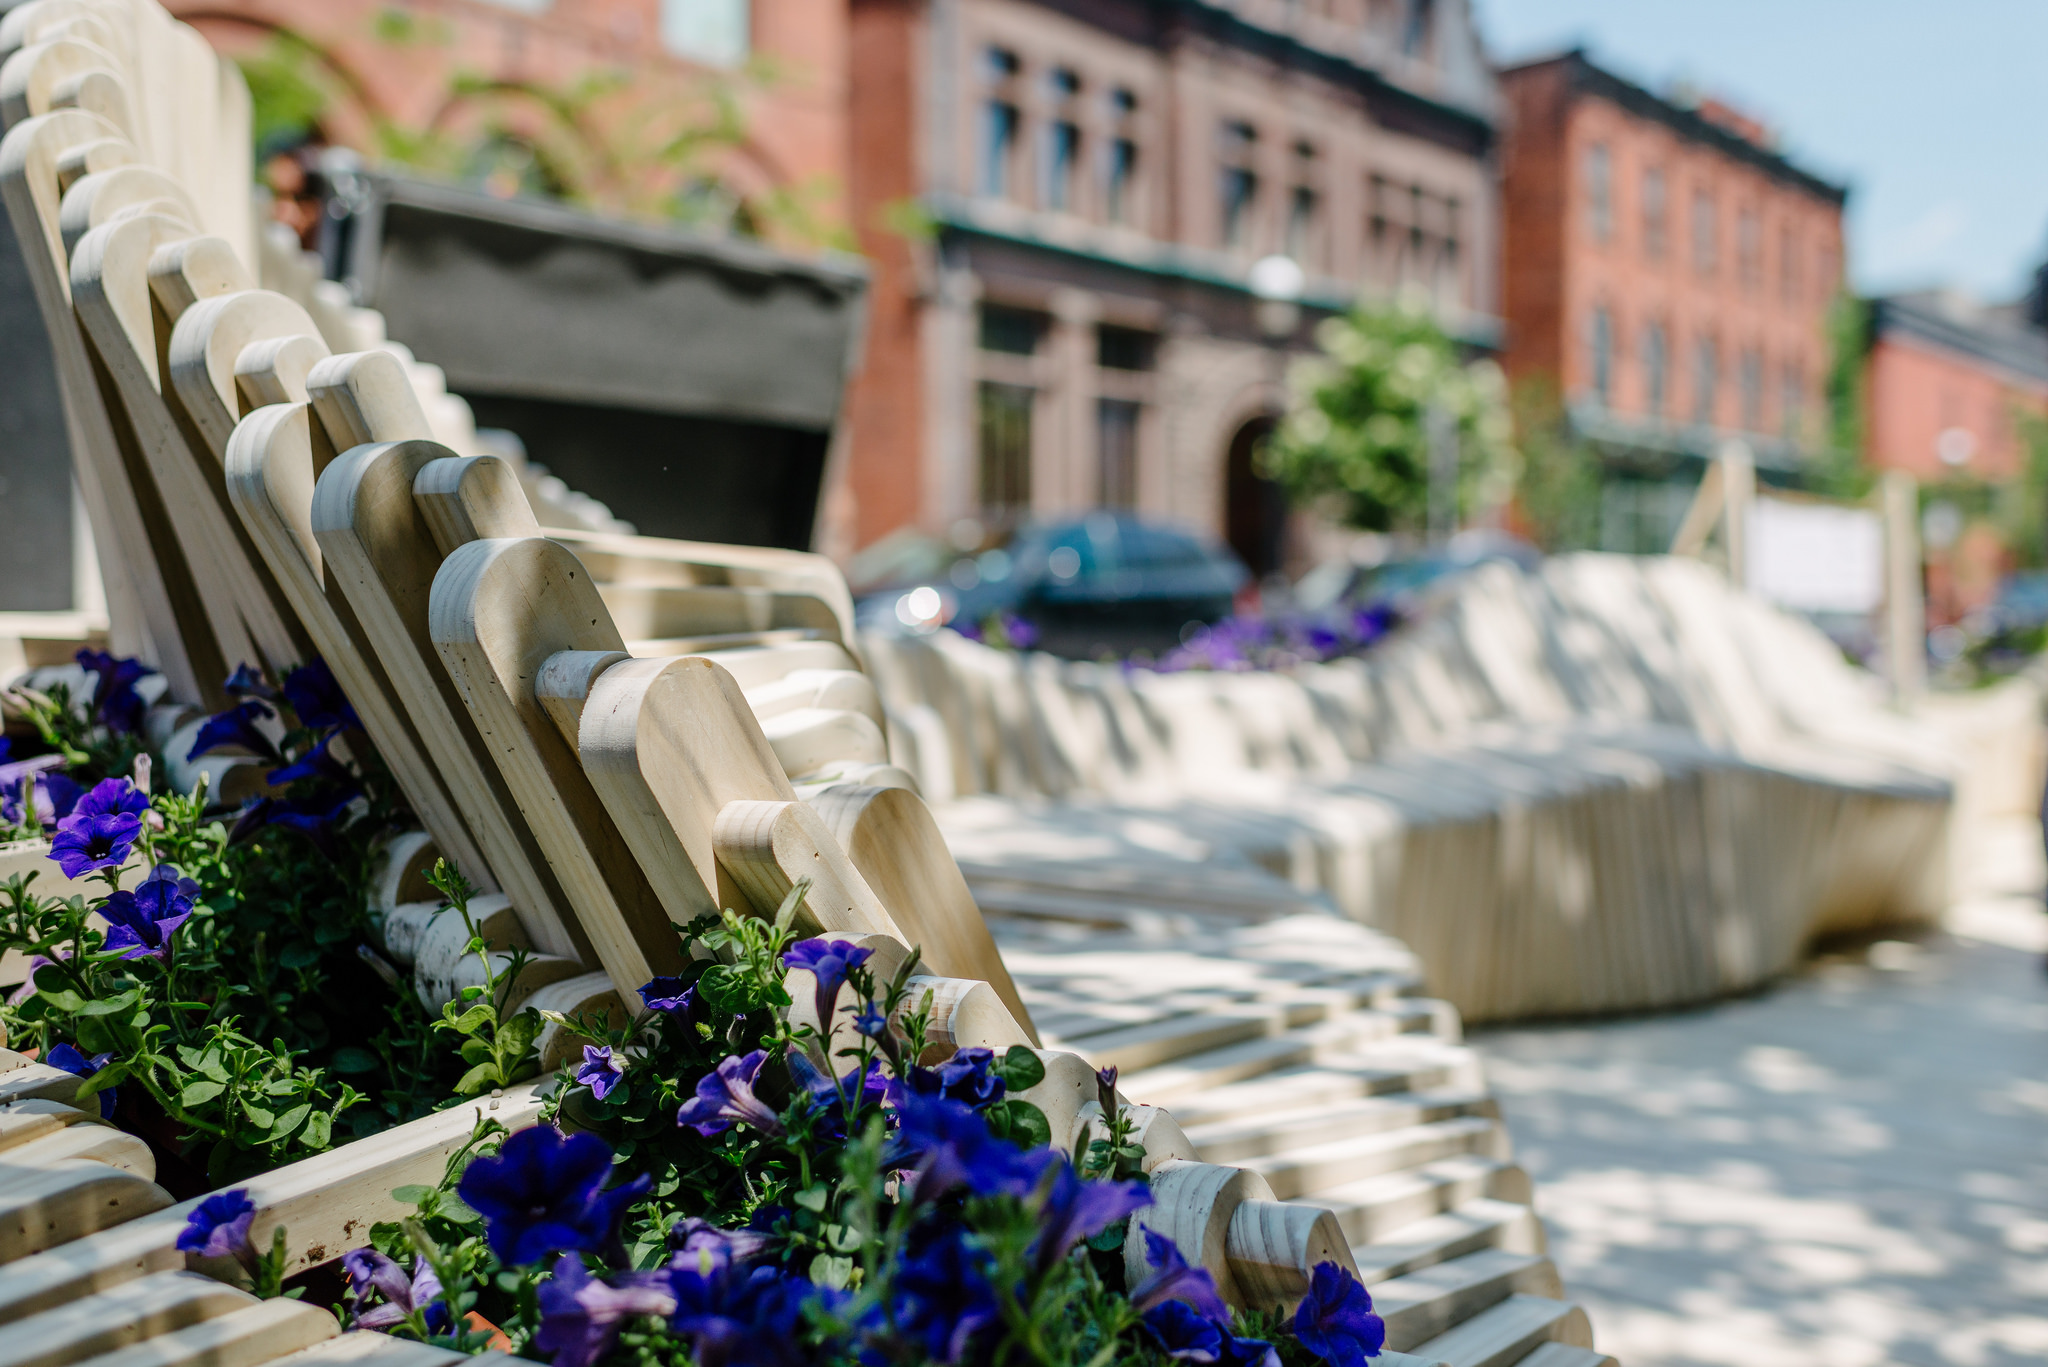 The Elm Street parklet, photo via Ryerson DAS